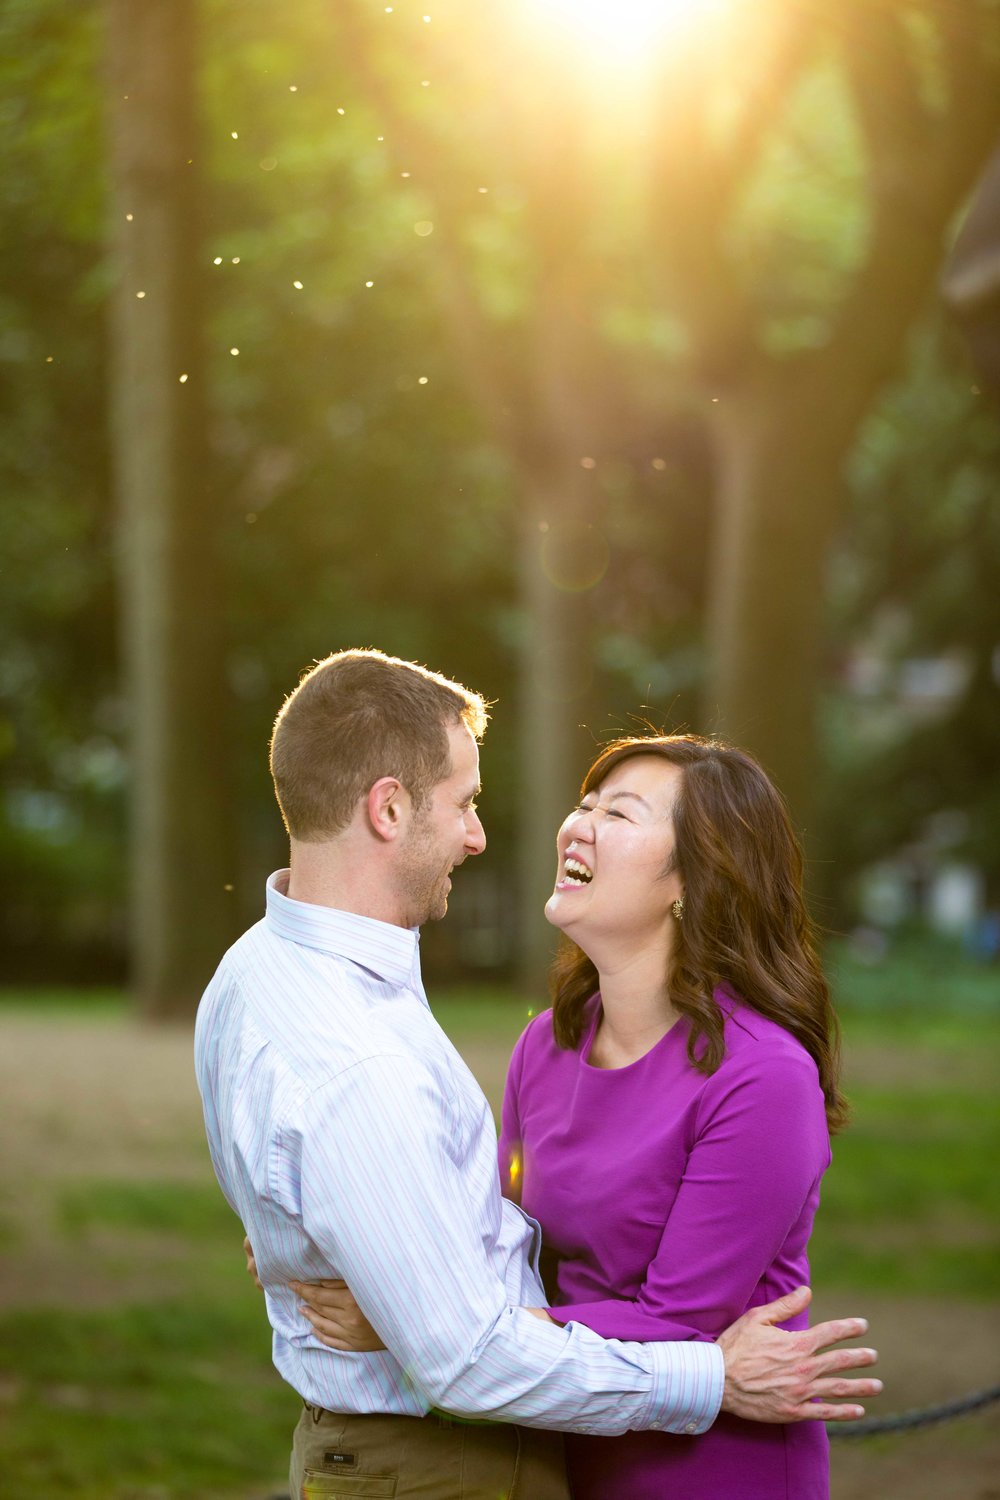 West Village Washington Square Park NYC Marriage Engagement Photo Session Shoot-5.jpg